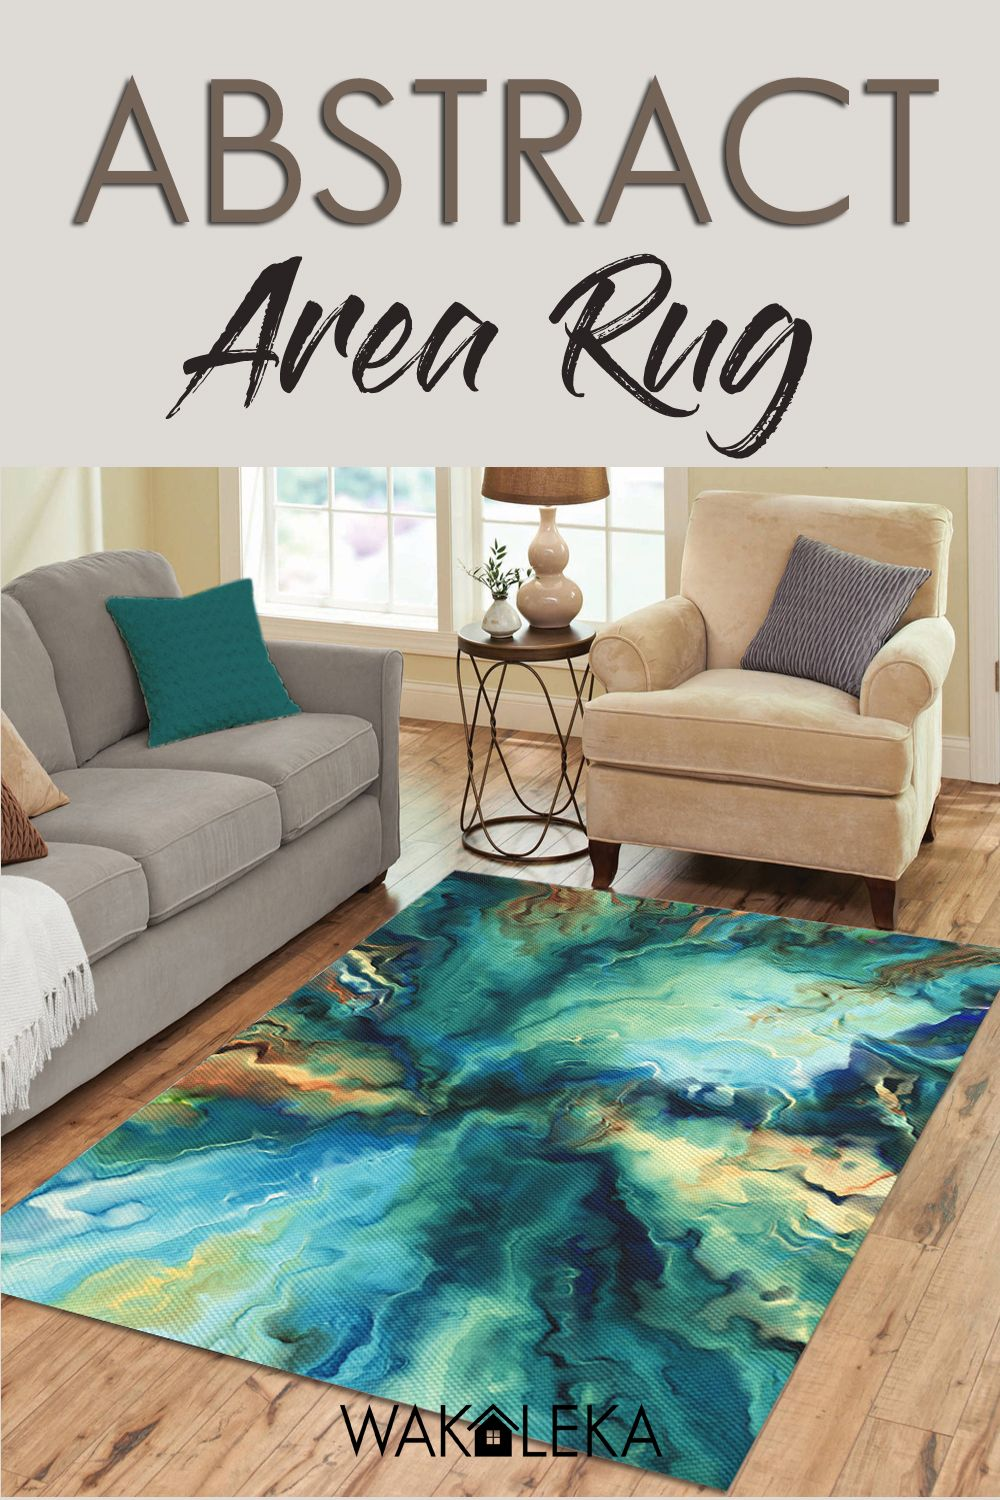 Modern Abstract Area Rug Dobby Textured Rug 3x5 4x6 5x7 In